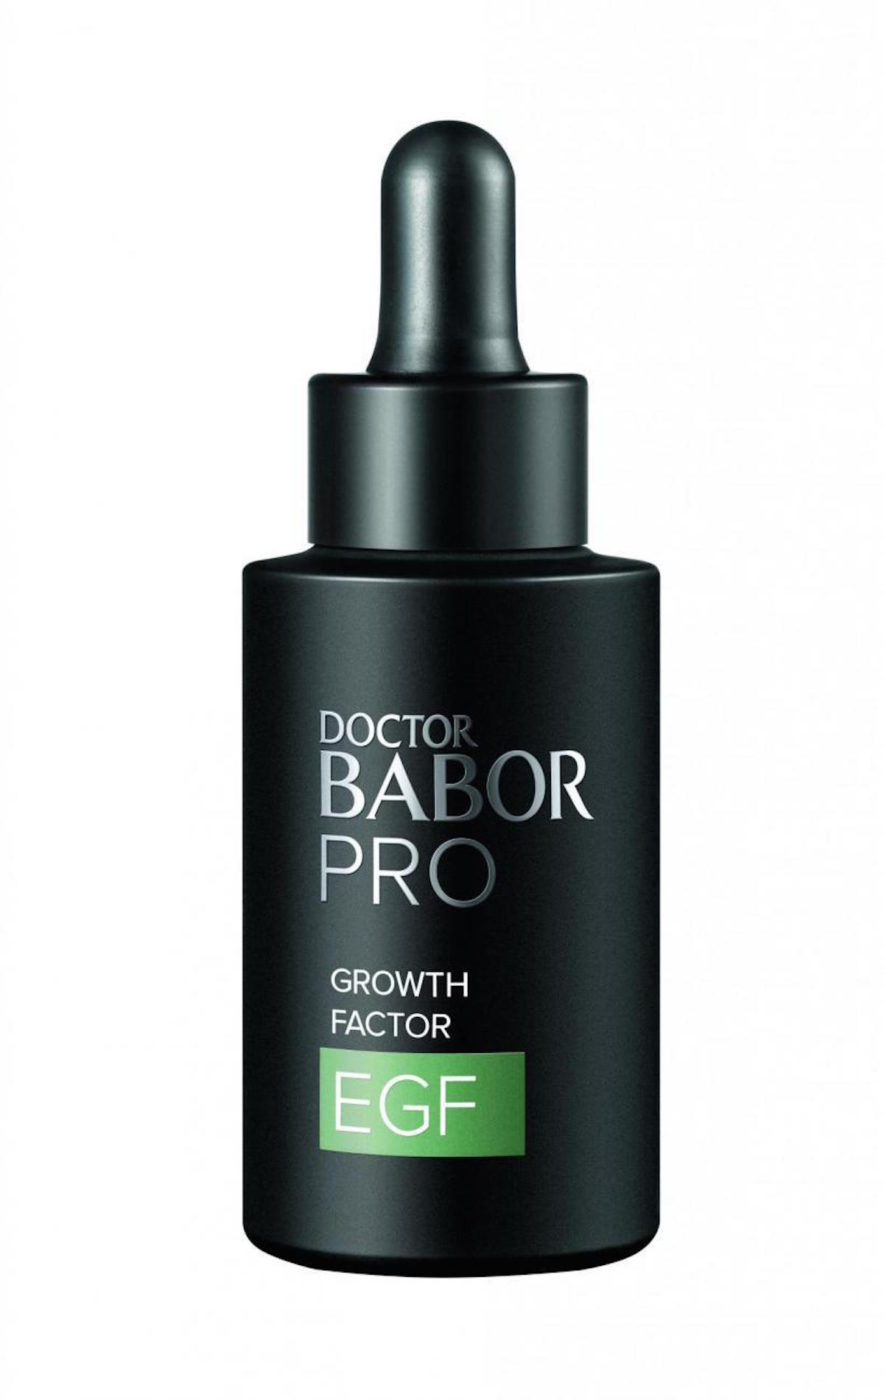 Doctor Babor Pro Growth Factor